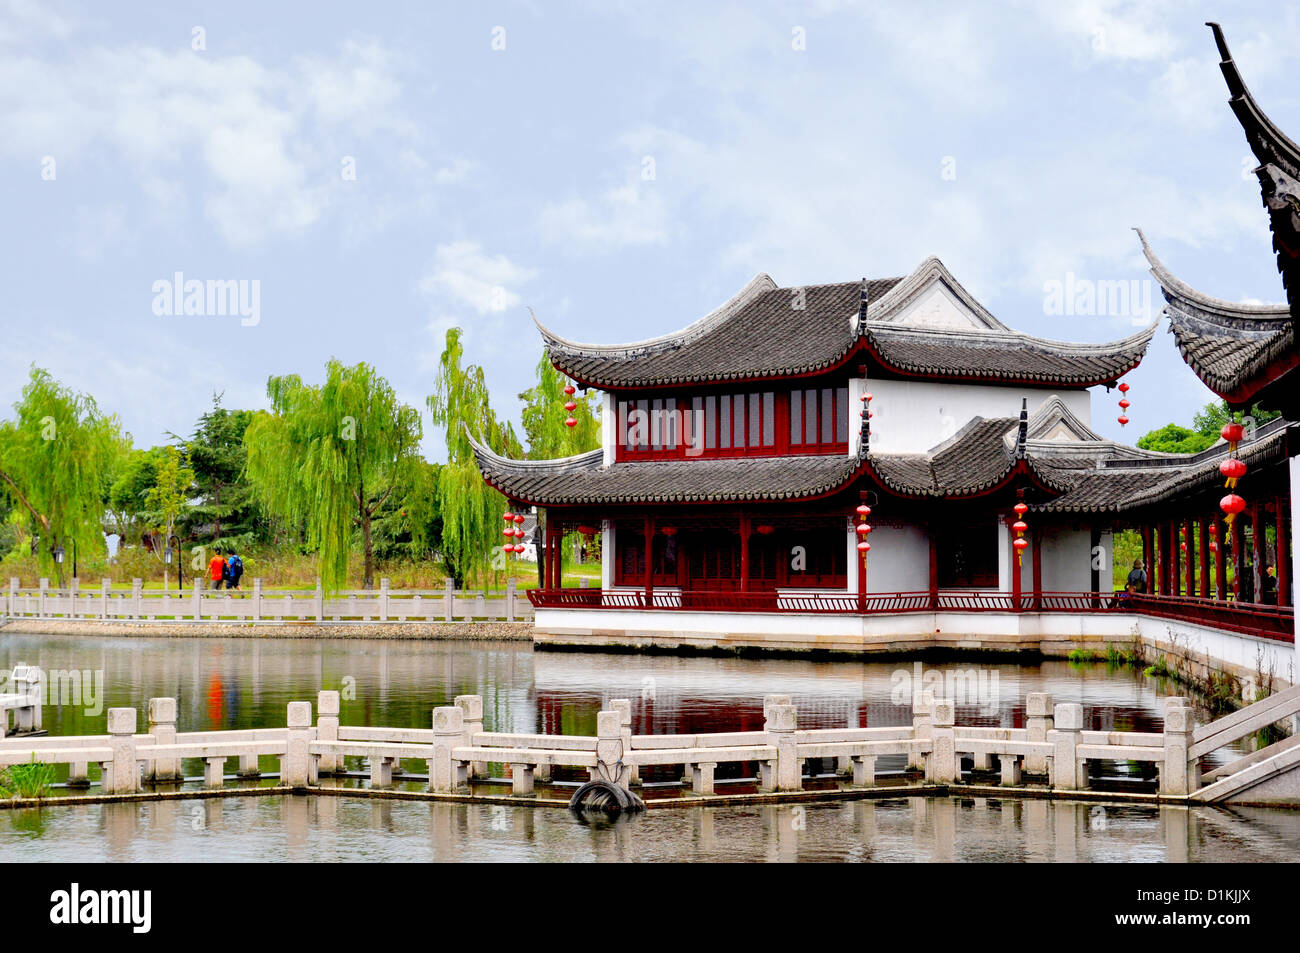 Architecture in Tongli Canal Town near Shanghai, China Stock Photo